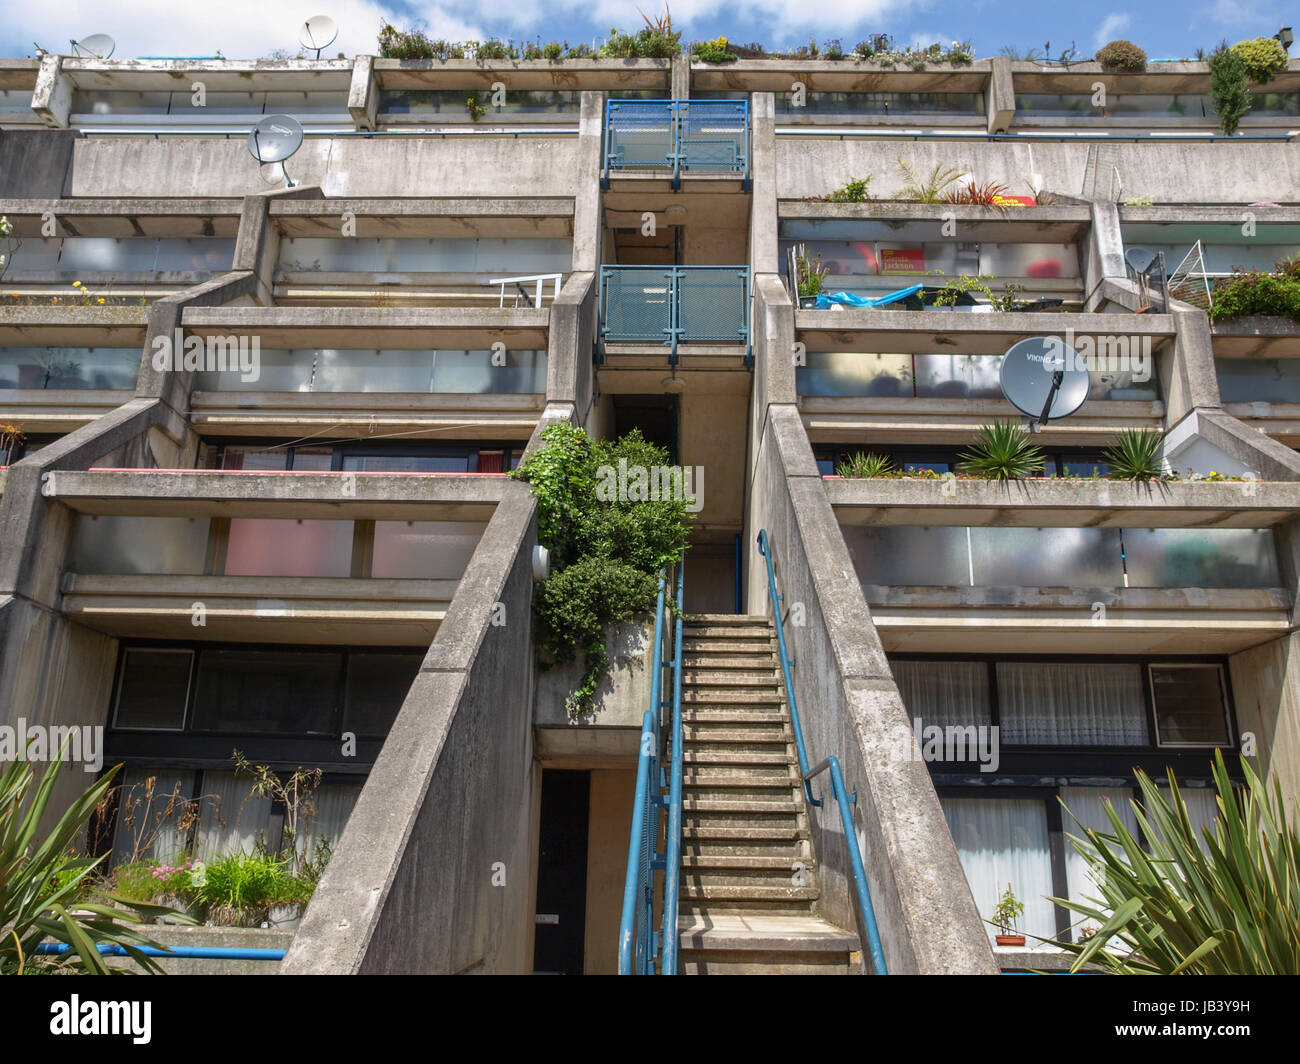 LONDON, ENGLAND, UK - MAY 06, 2010: The Alexandra Road estate designed in 1968 by Neave Brown applies the terraced Stock Photo